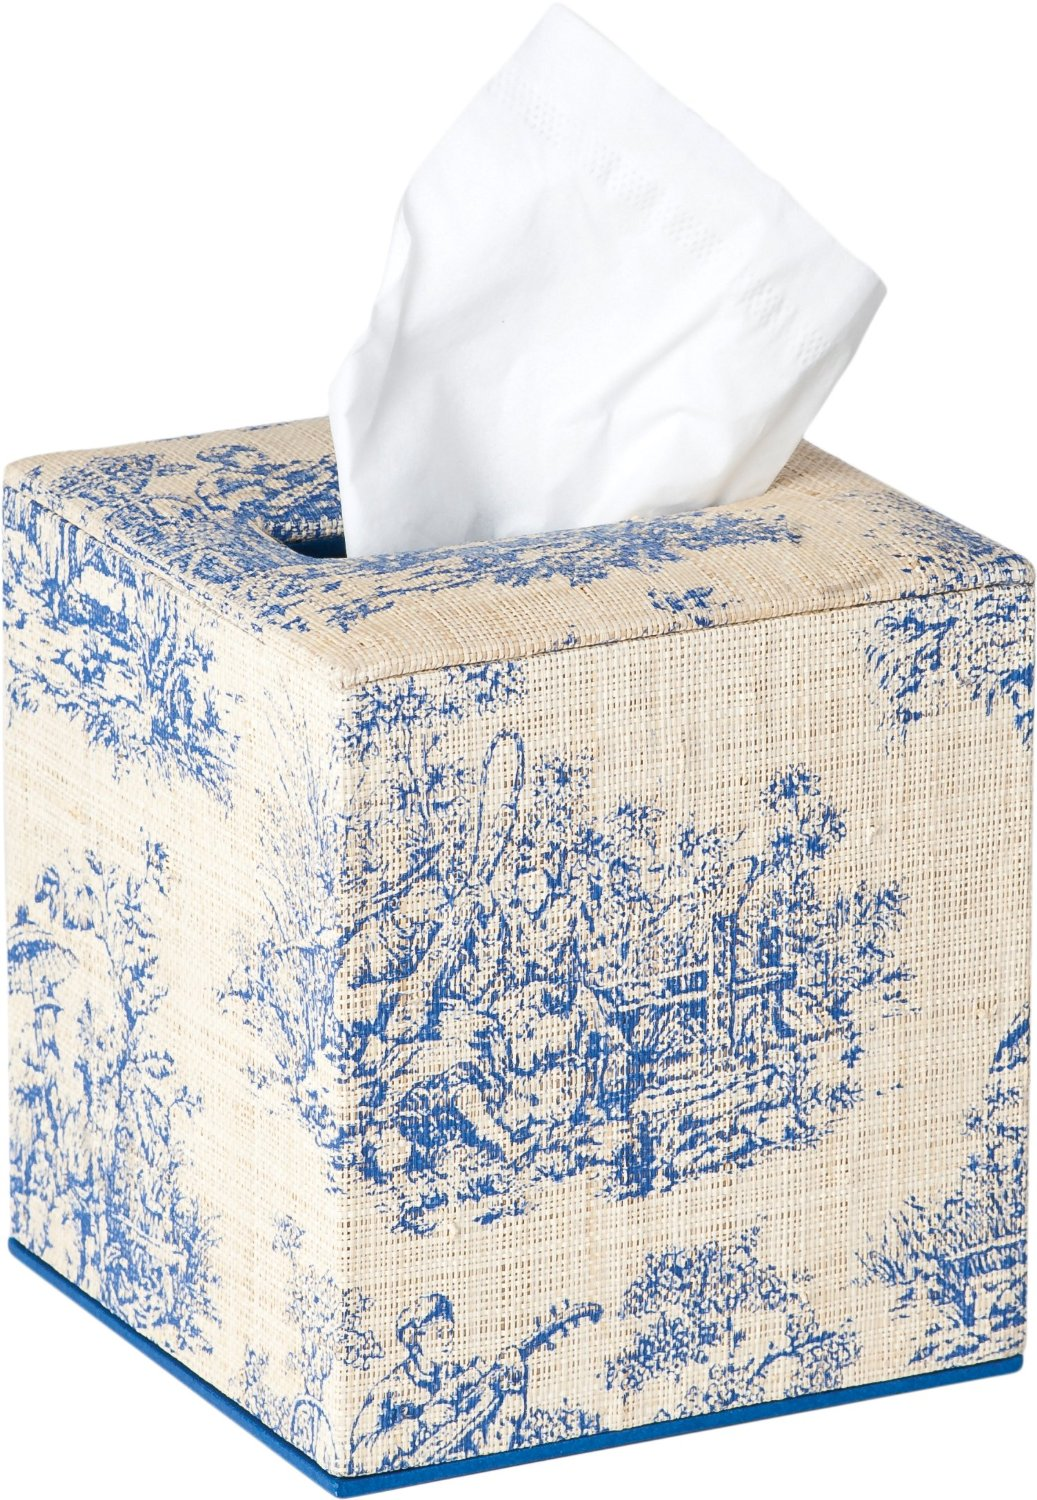 Toile Tissue Box